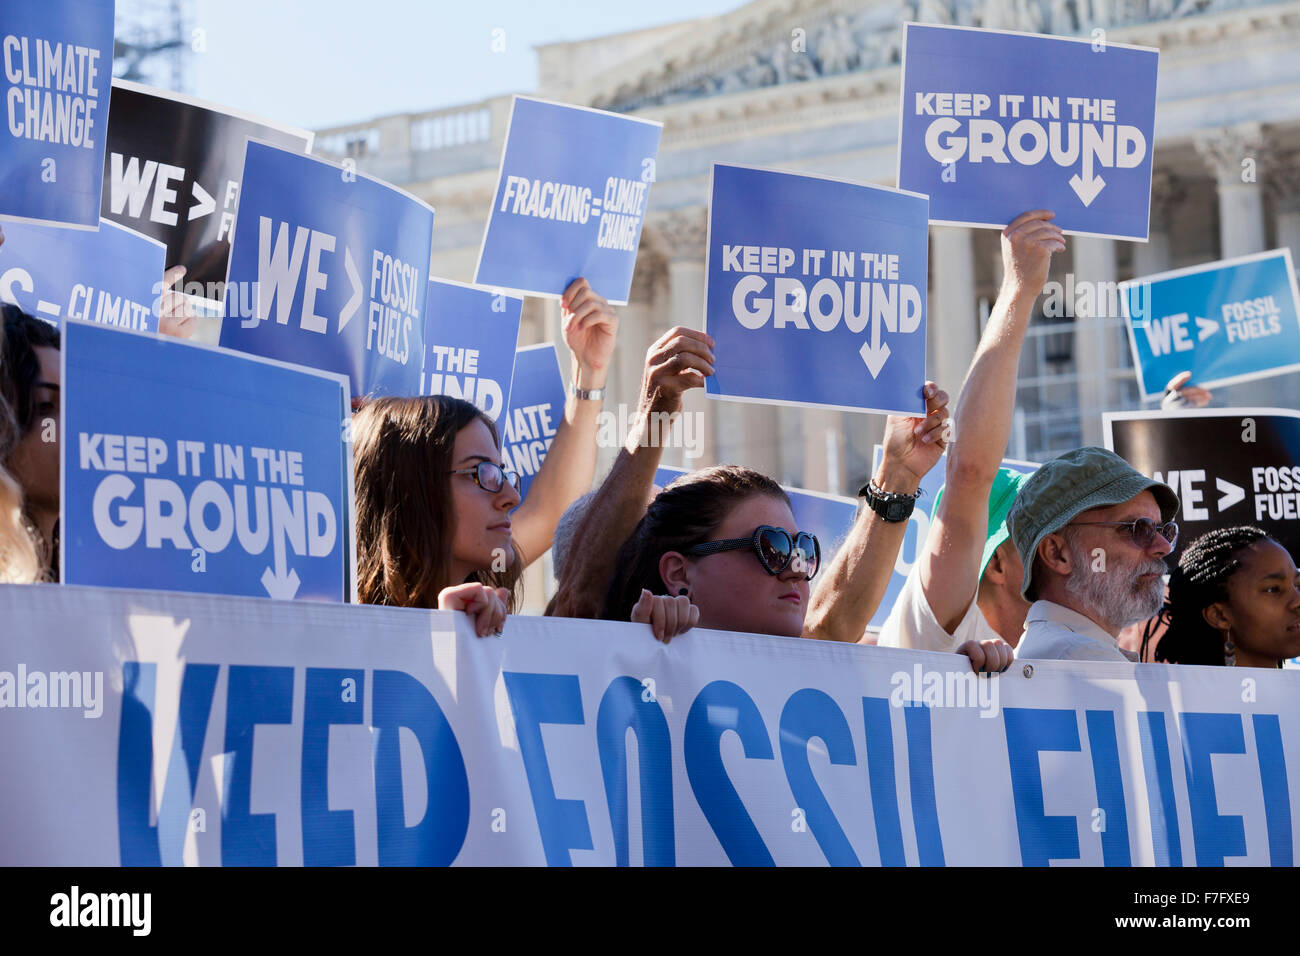 Climate activists at 'Keep It In The Ground' rally - Washington, DC USA - Stock Image